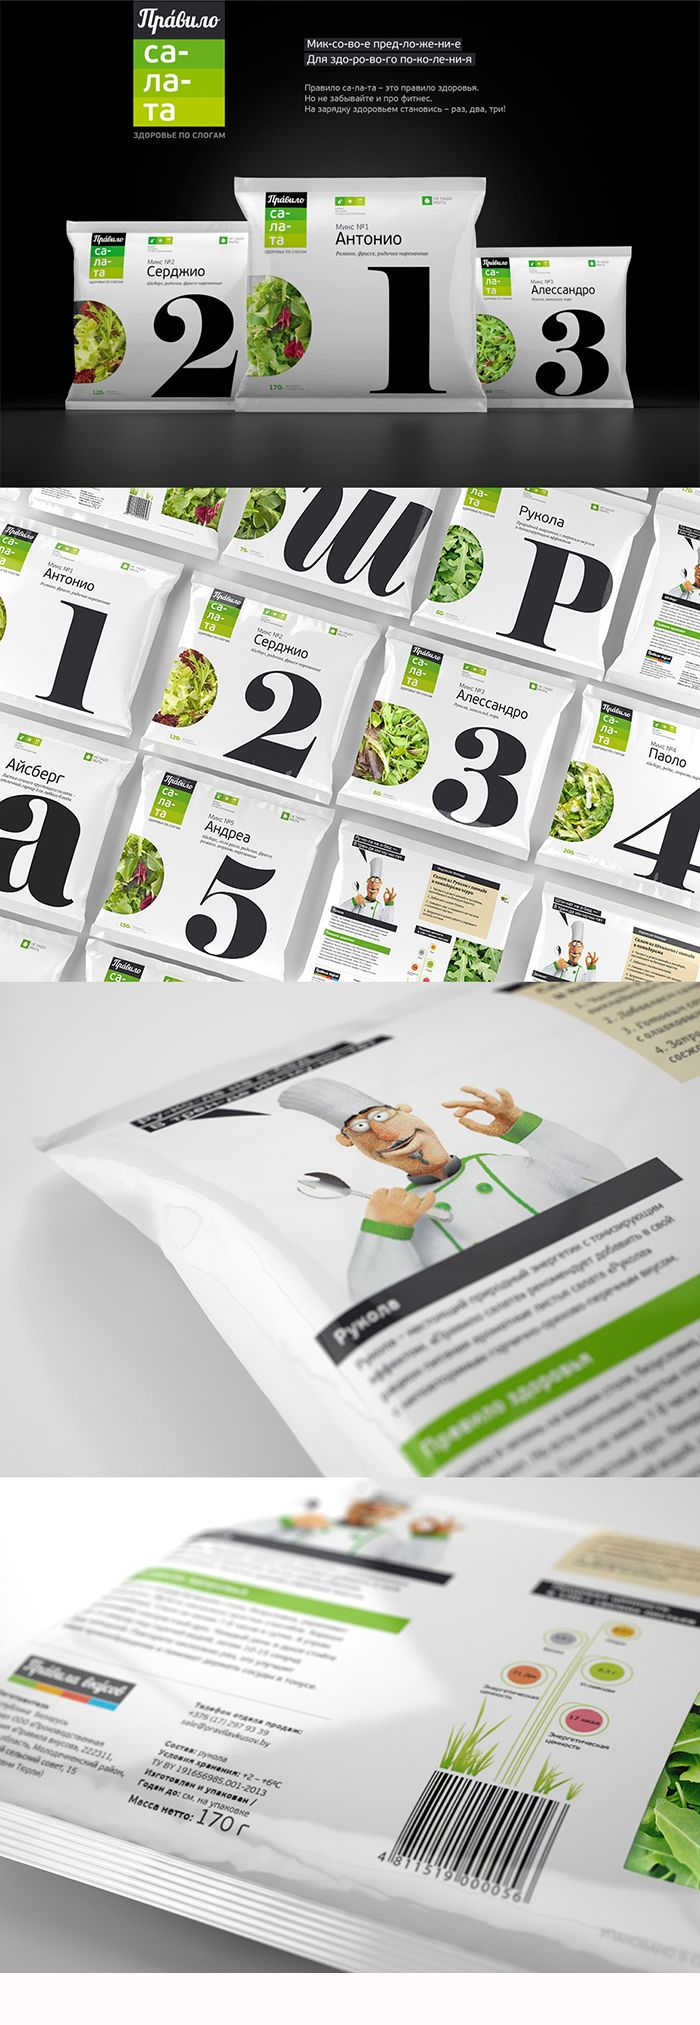 ПРАВИЛО СА-ЛА-ТА - салаты. Awesome salads by numbers and letters #packaging PD